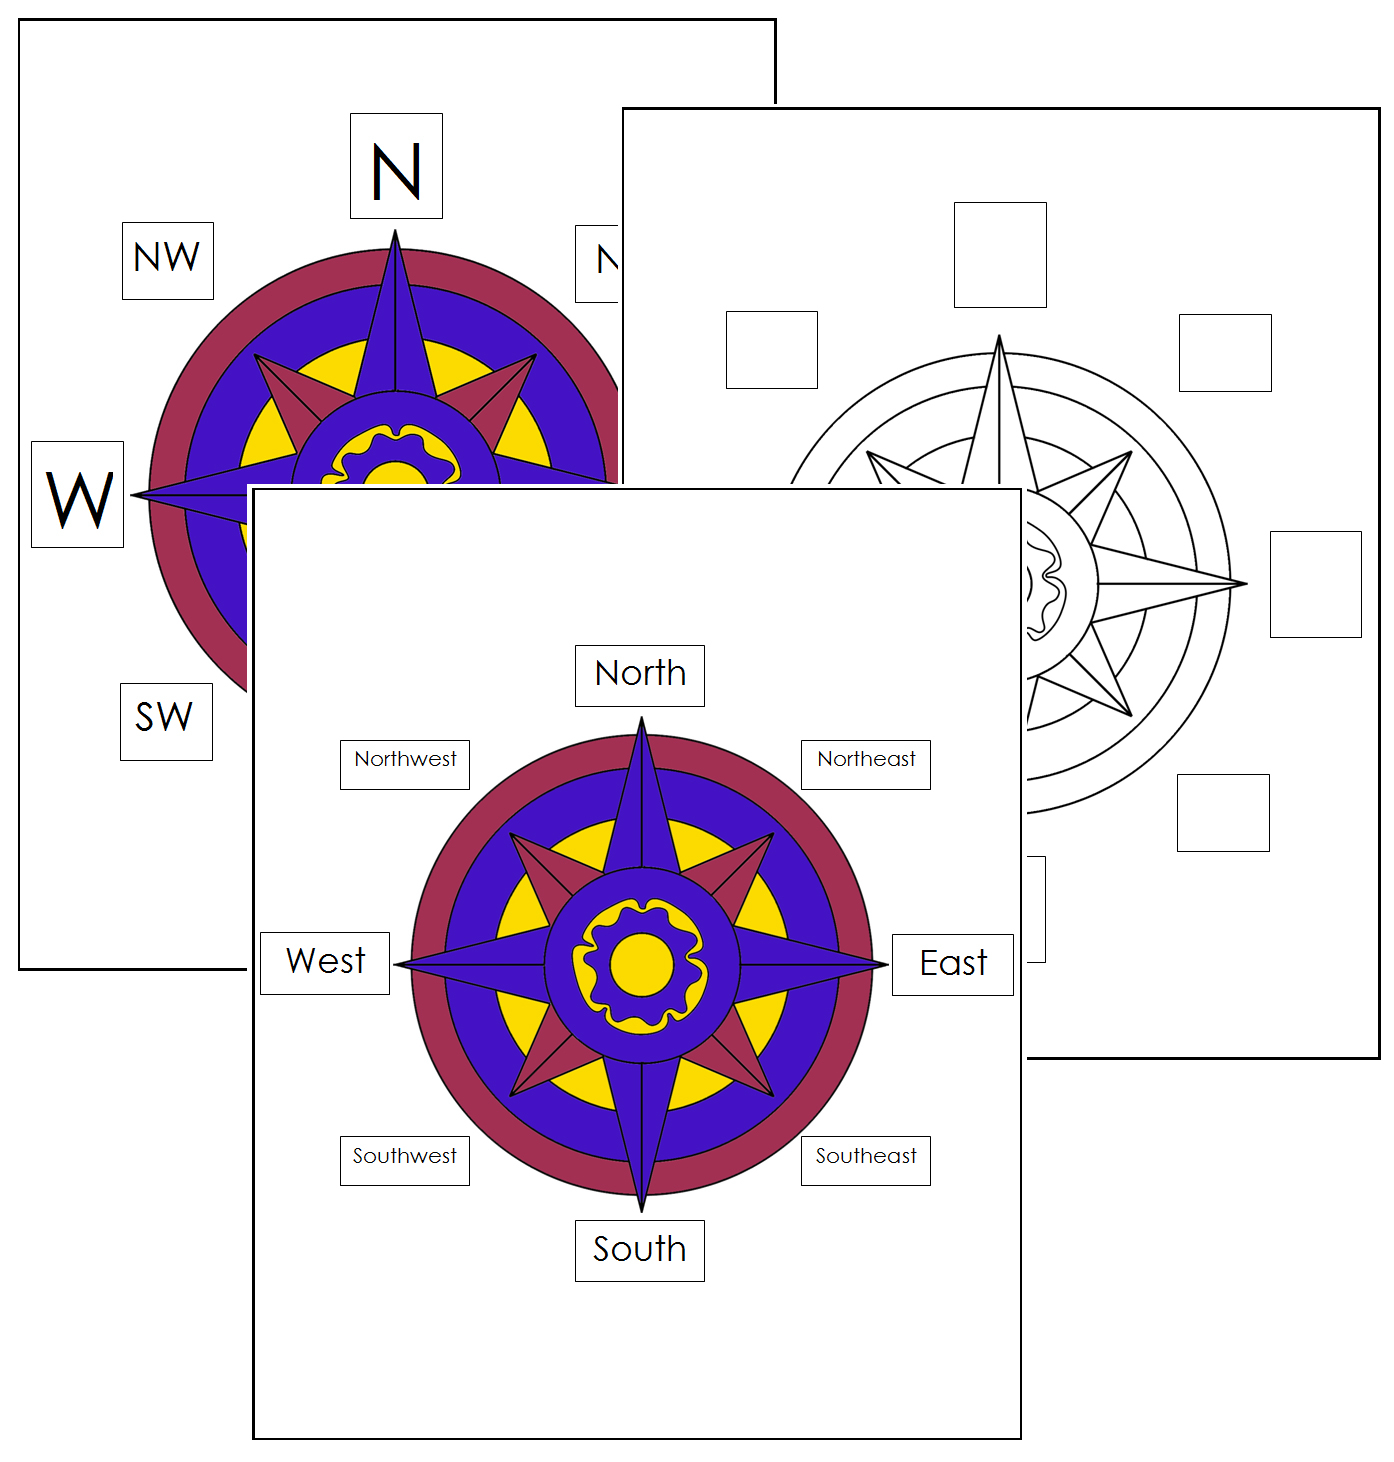 Worksheets Compass Rose Worksheets free compass rose worksheets control charts printable geography